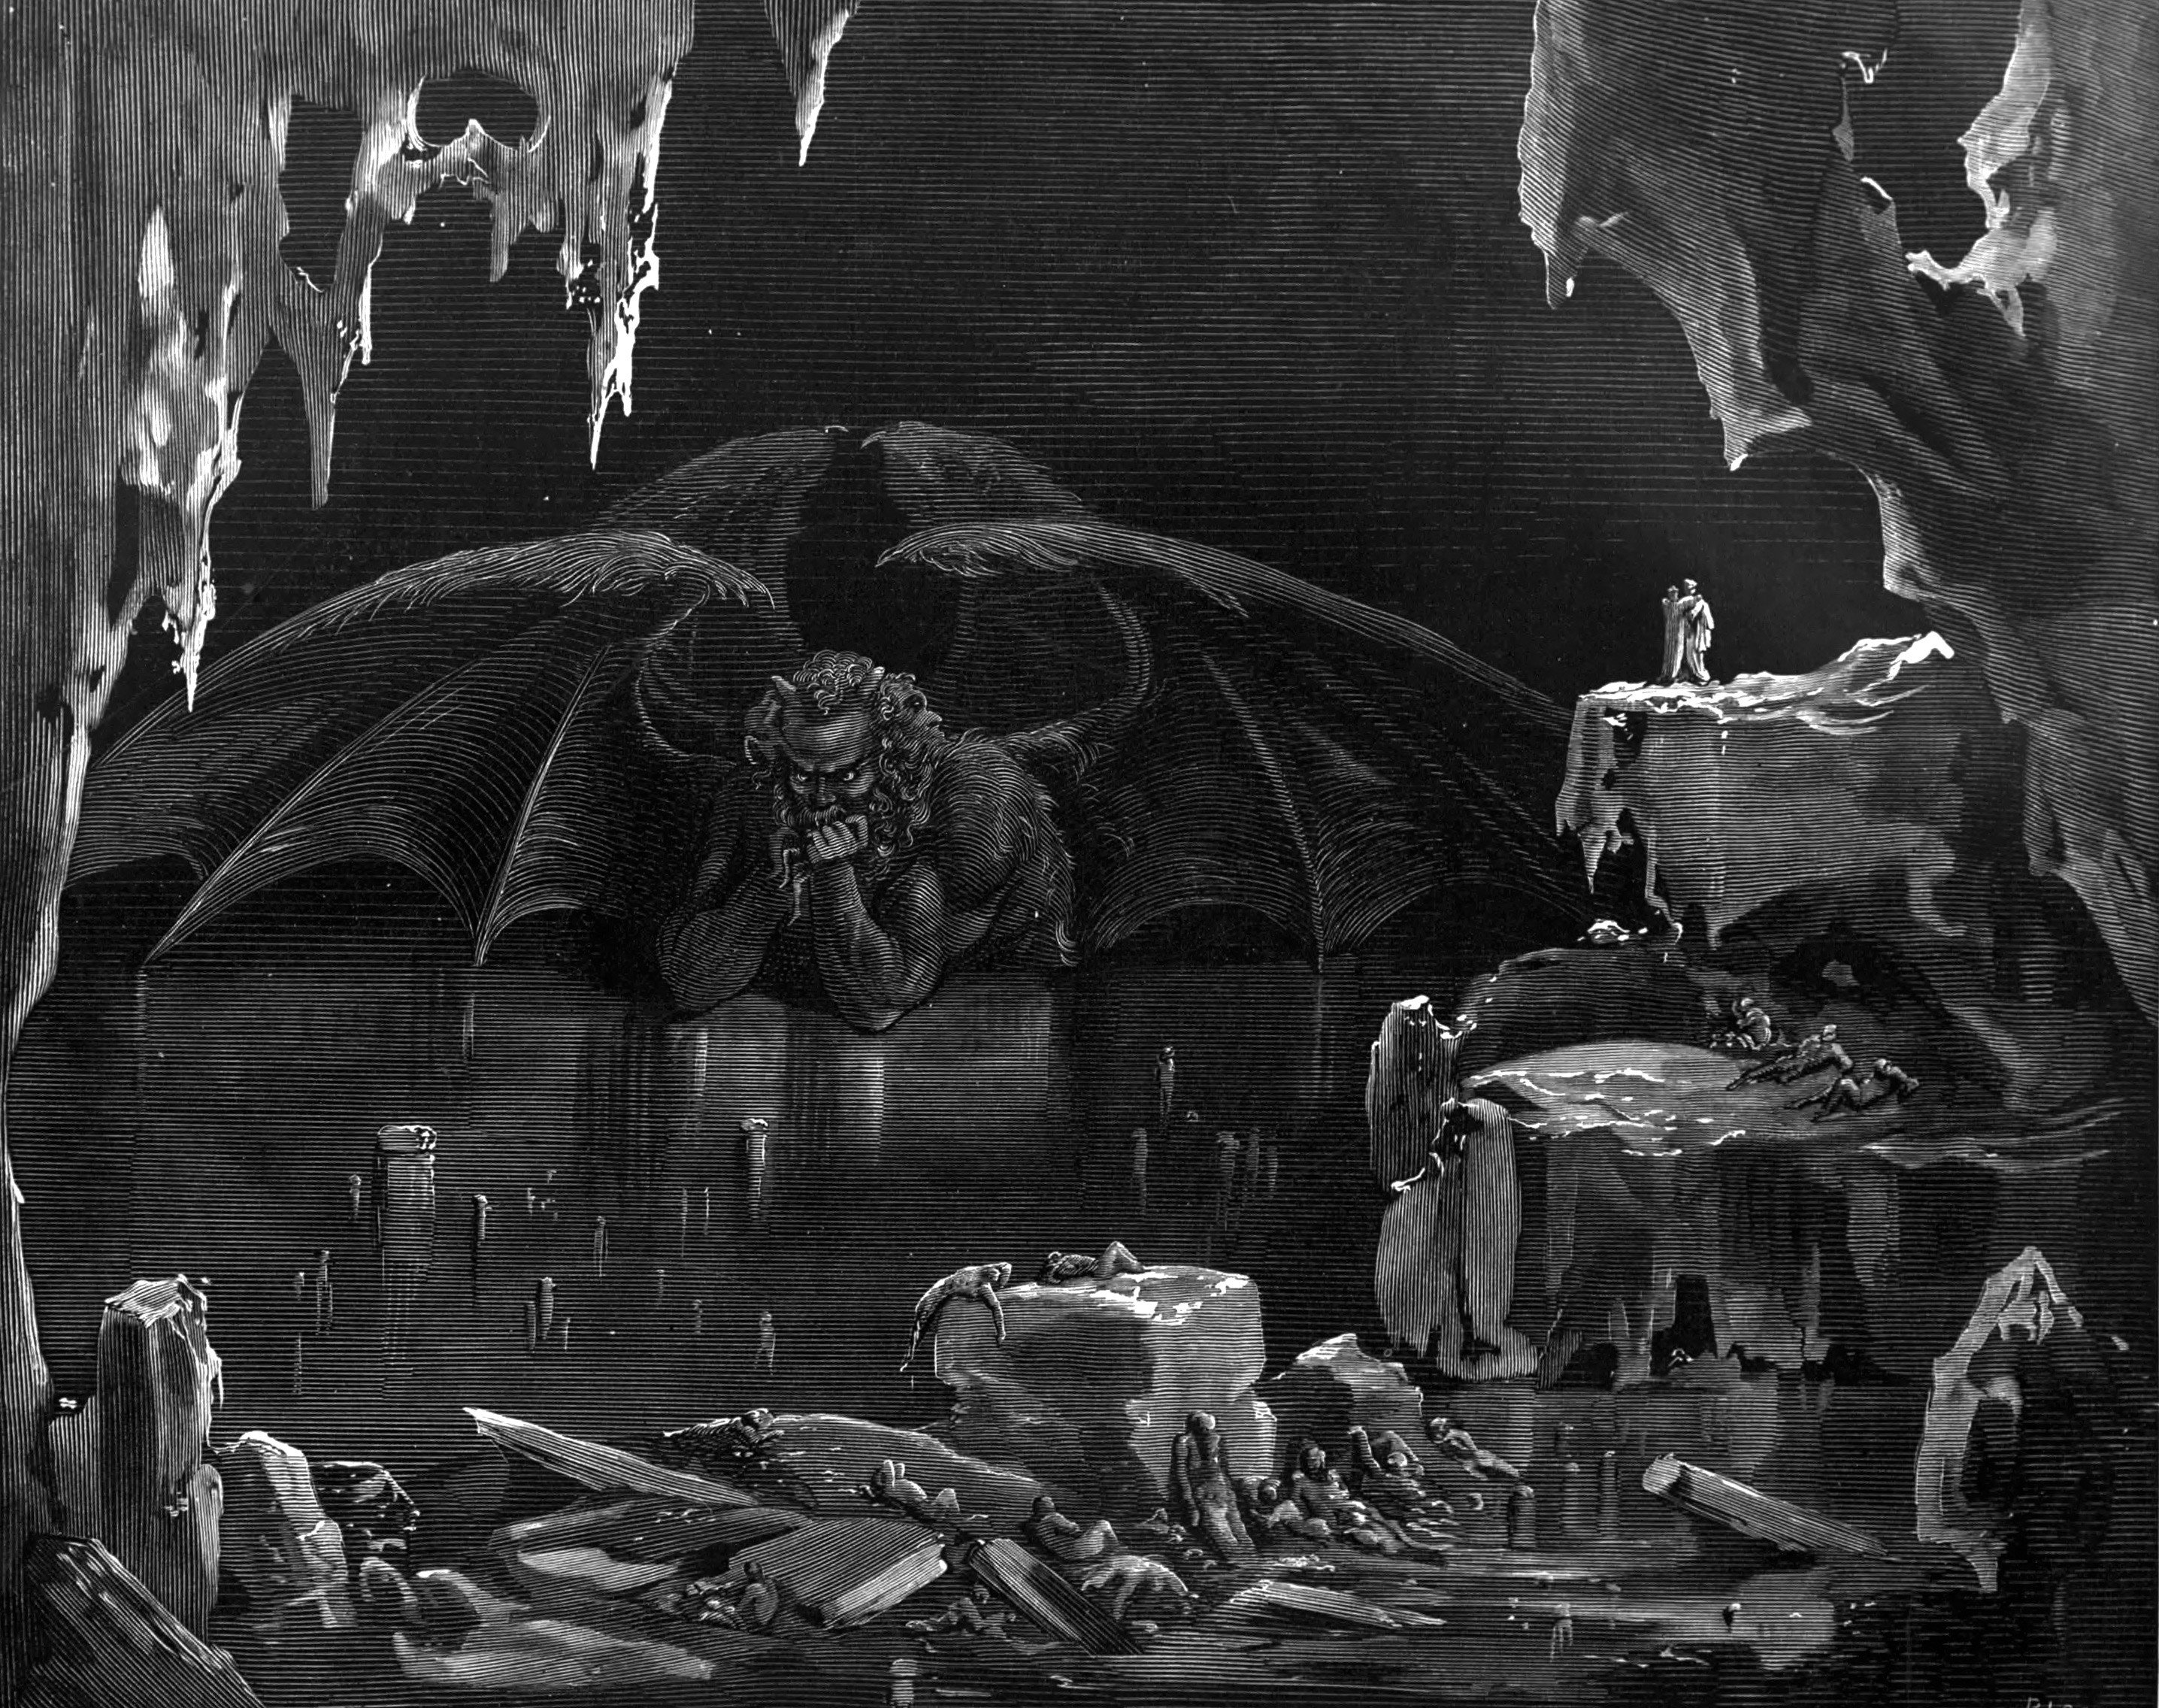 dantes inferno symbolism Dante is the author of a three-part trilogy following the journey of dante, the pilgrim this essay addresses three cantos from dante's inferno, the first installment of the trilogy.